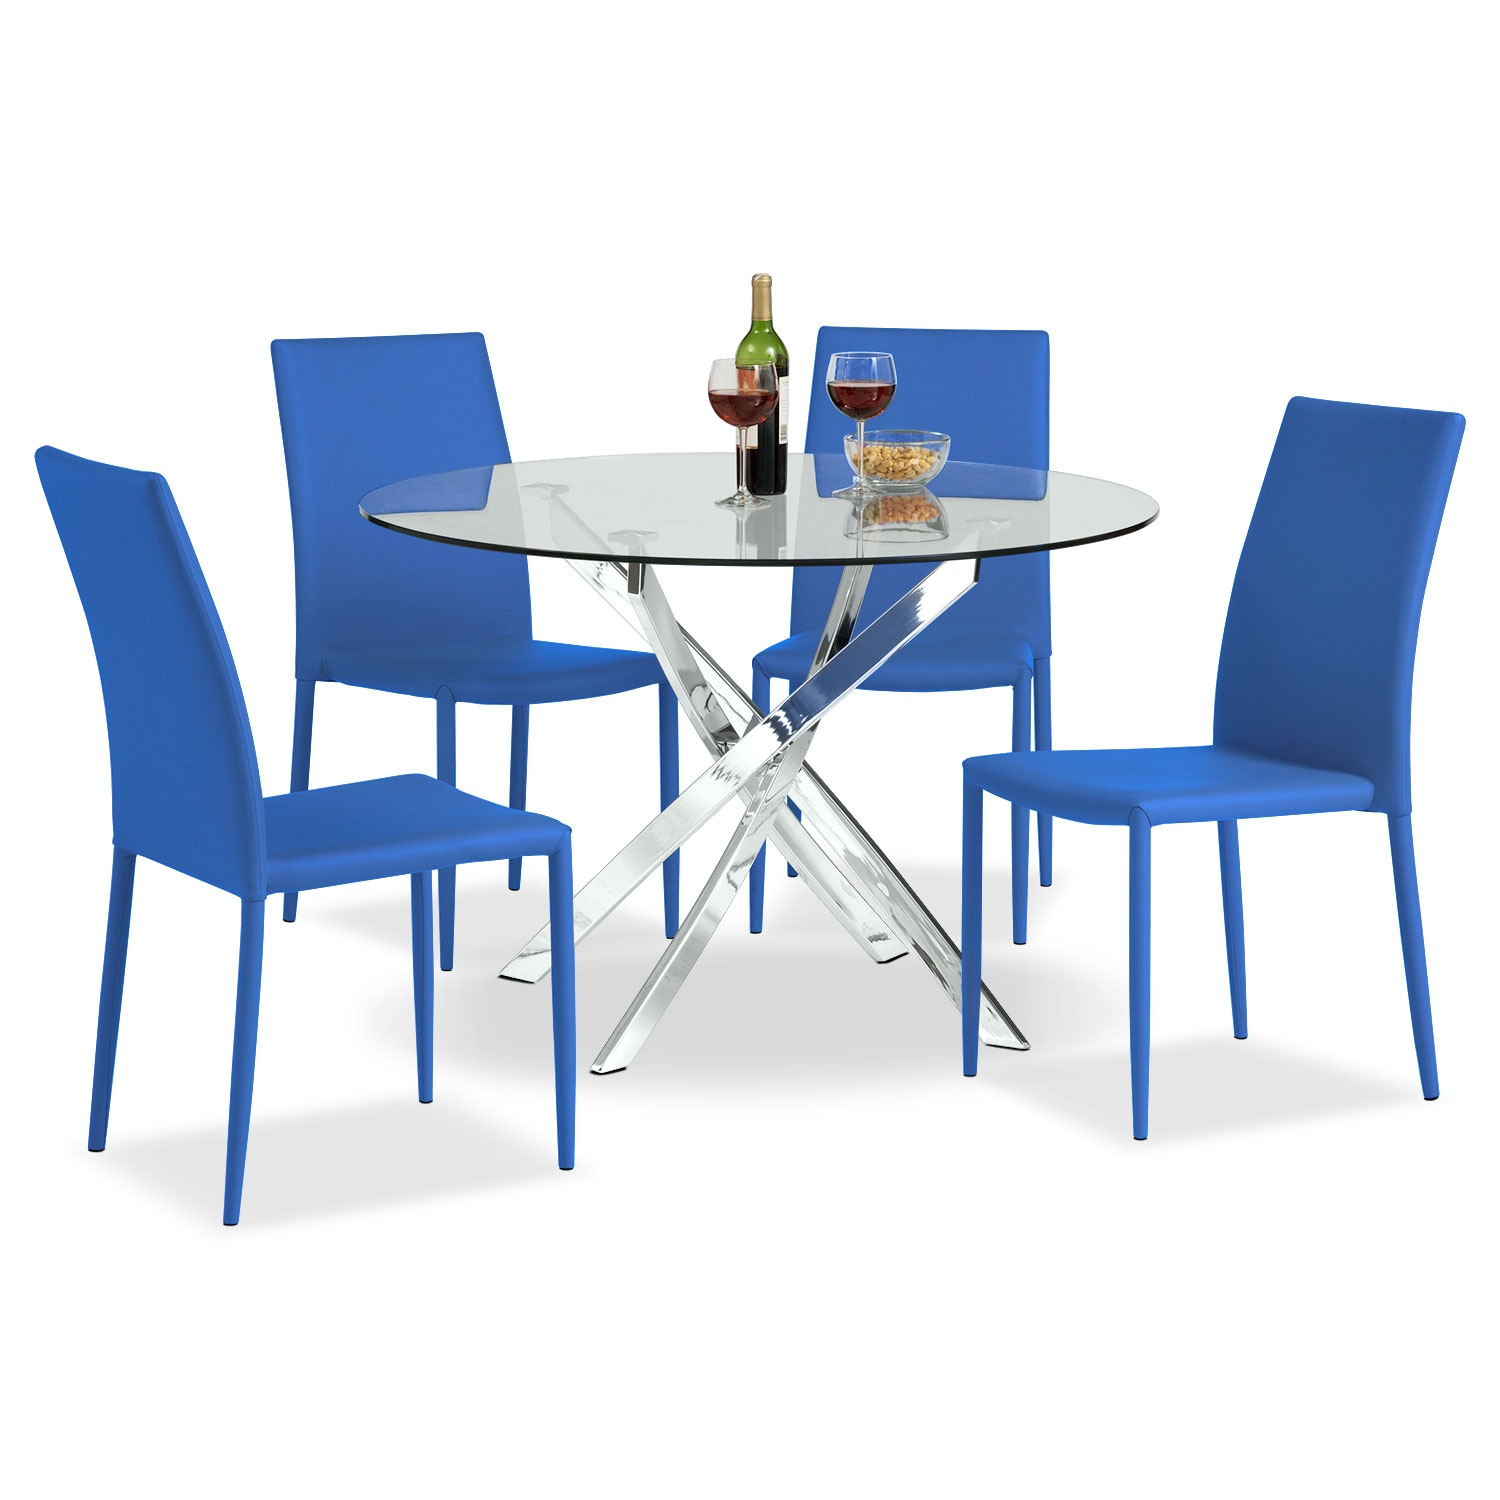 Dining Room Furniture - Quattro Table and 4 Chairs - Blue